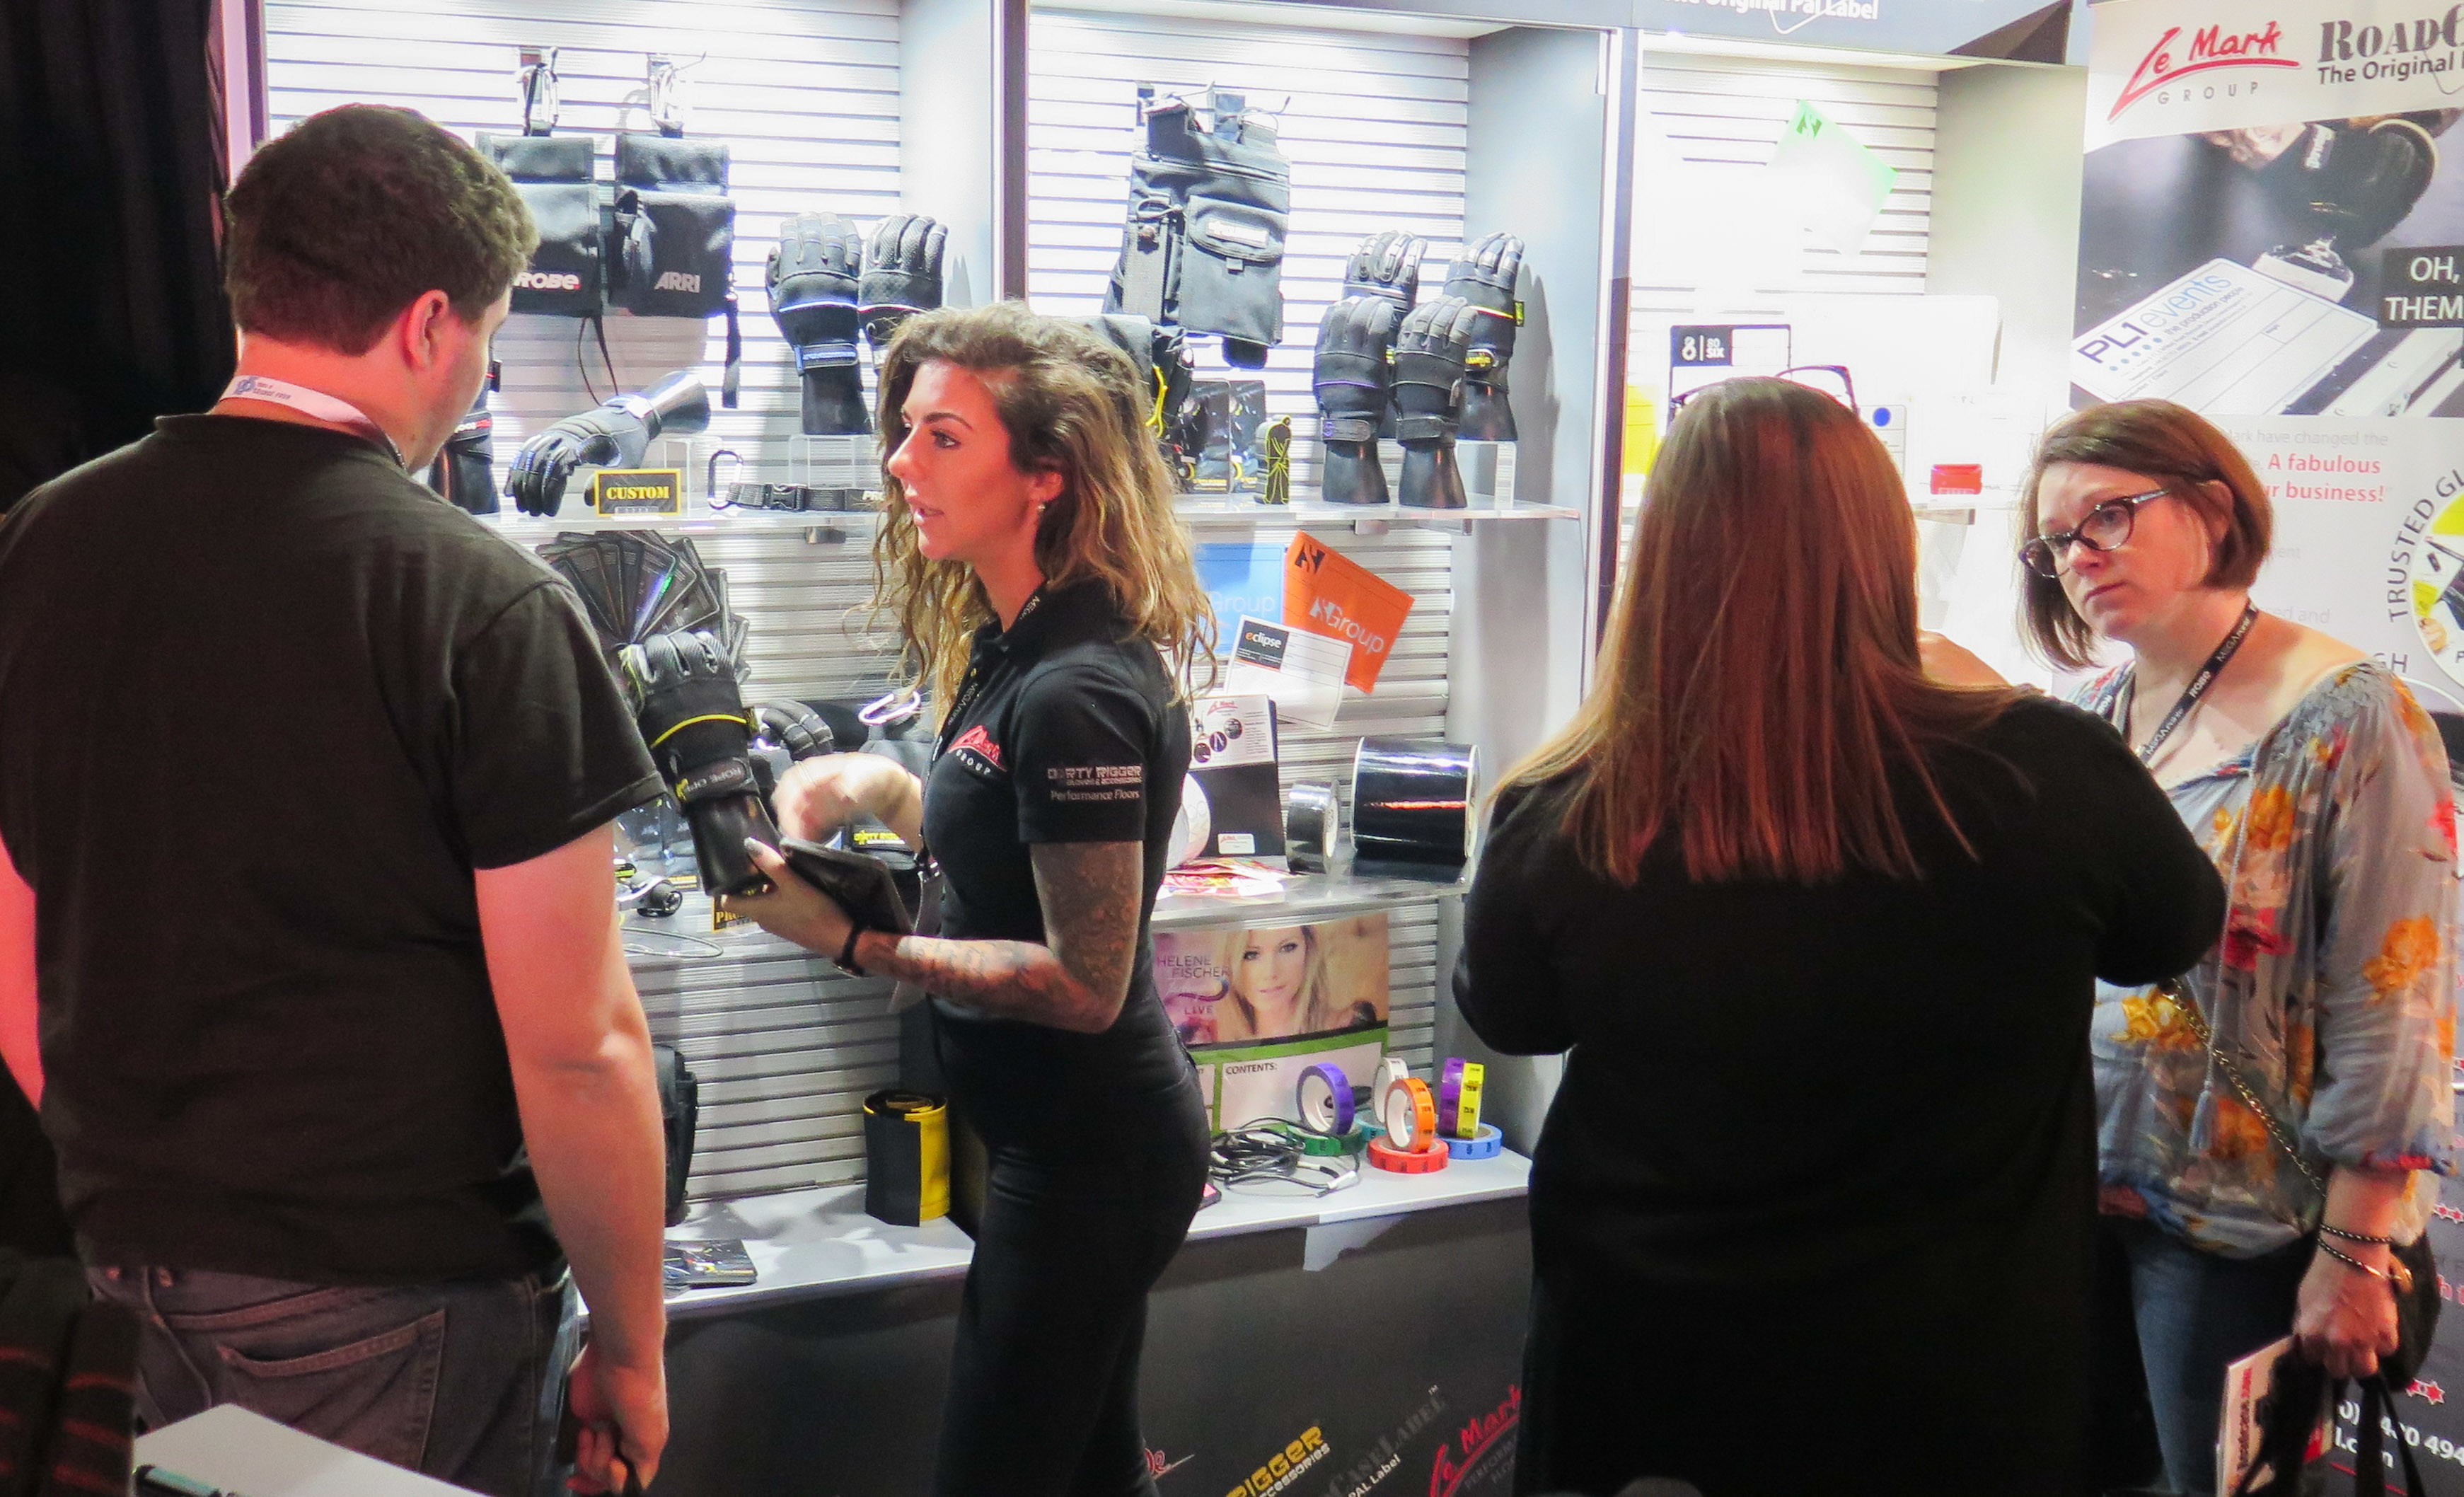 Jess was on hand to demo the Dirty Rigger Gloves & Accessories